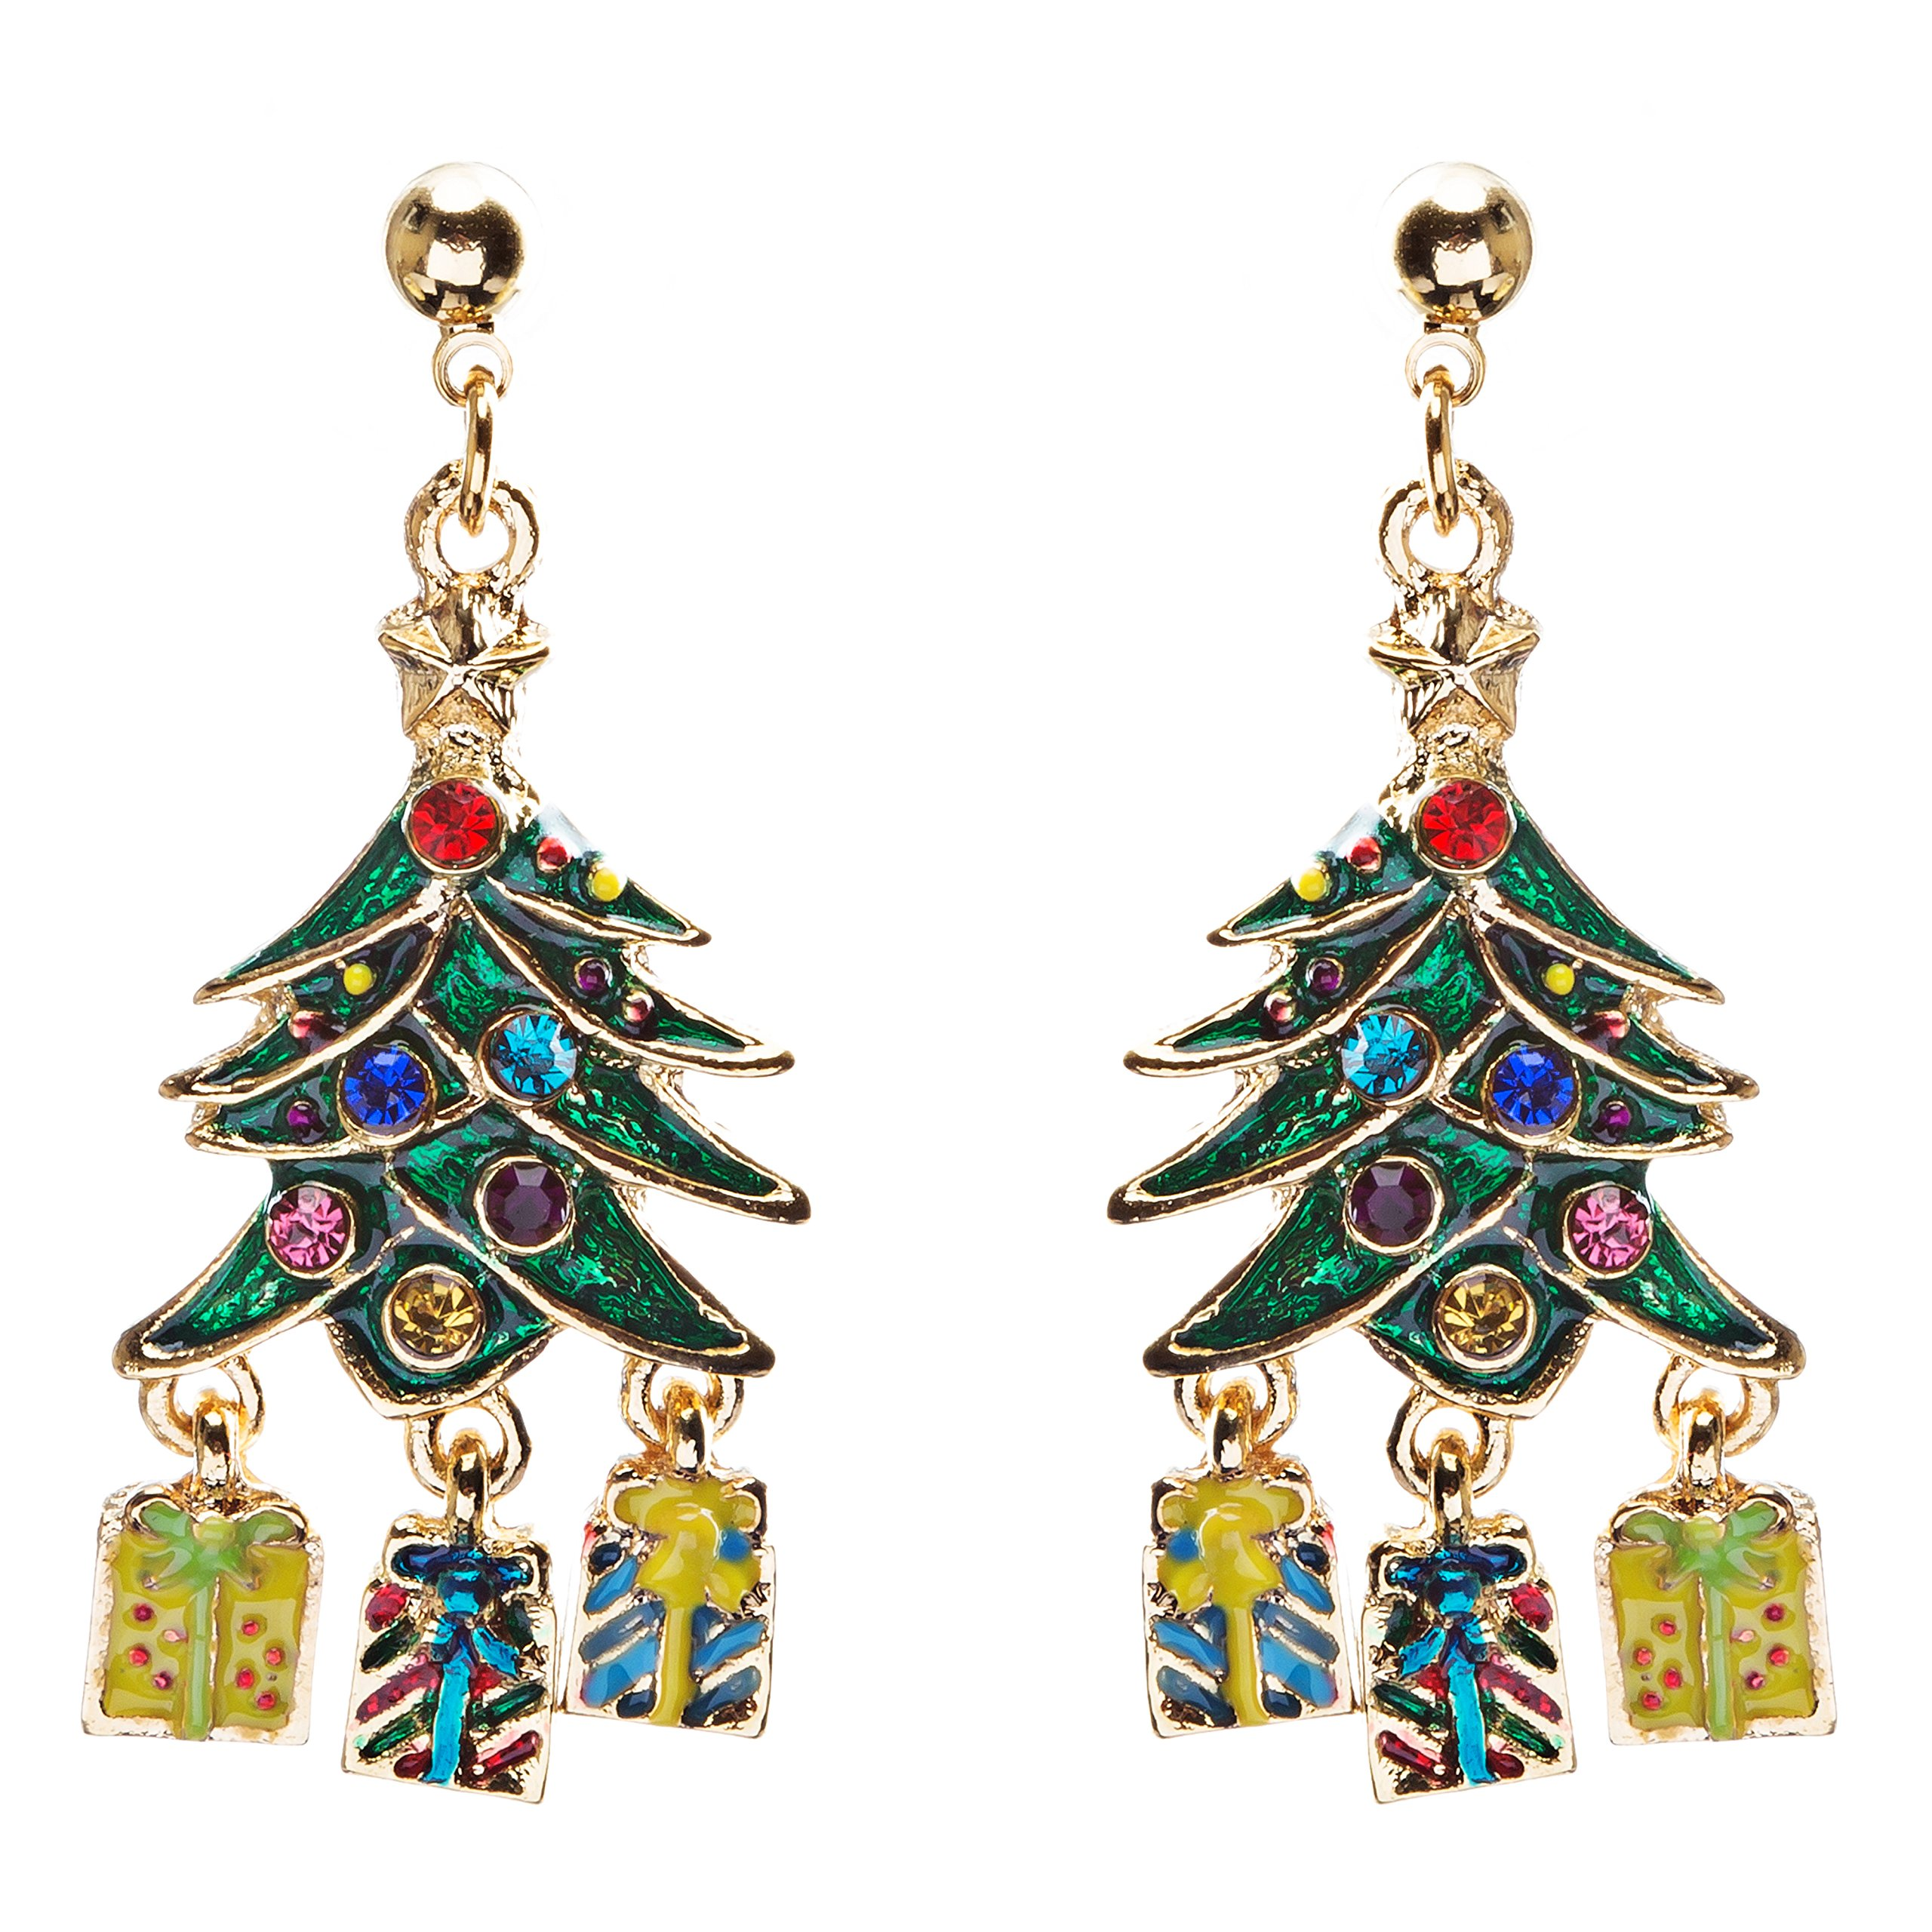 ACCESSORIESFOREVER Women Christmas Jewelry Crystal Rhinestone Holiday Gift Present Tree Earrings E886